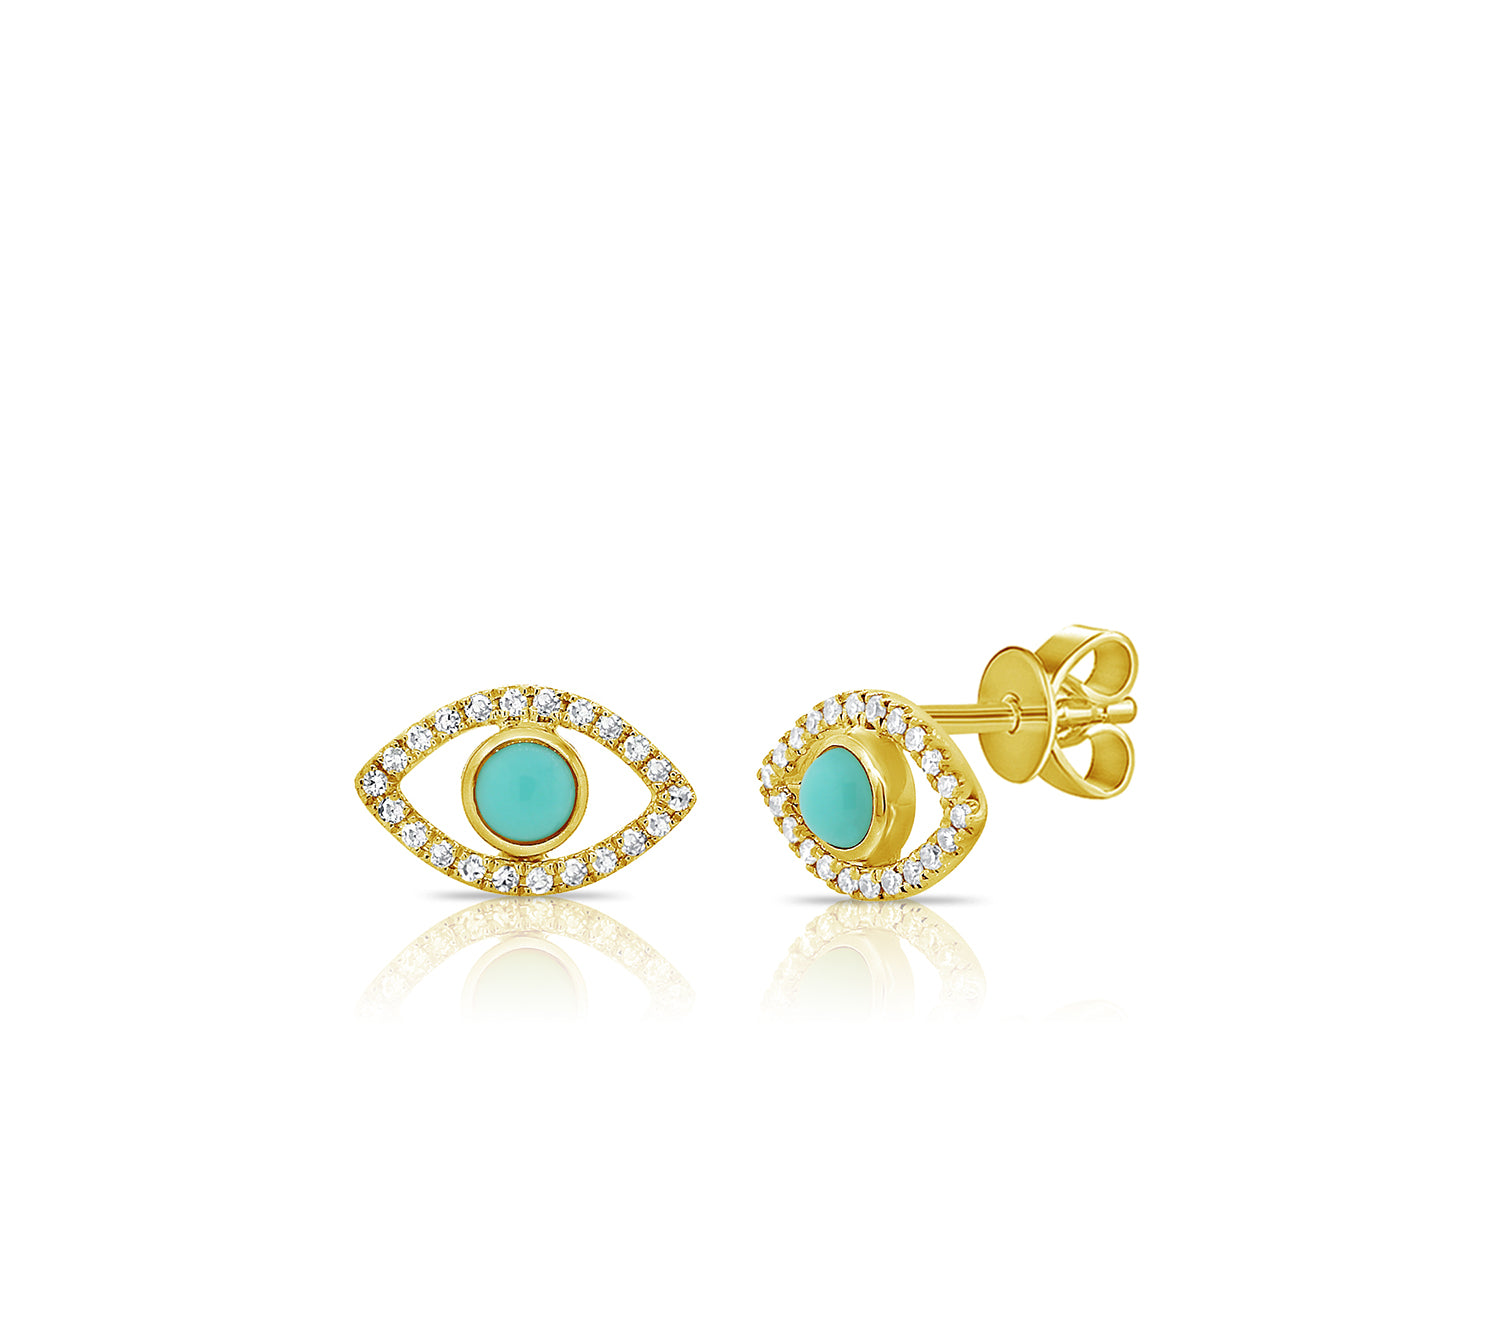 Evil Eye Stud Earrings in Gold